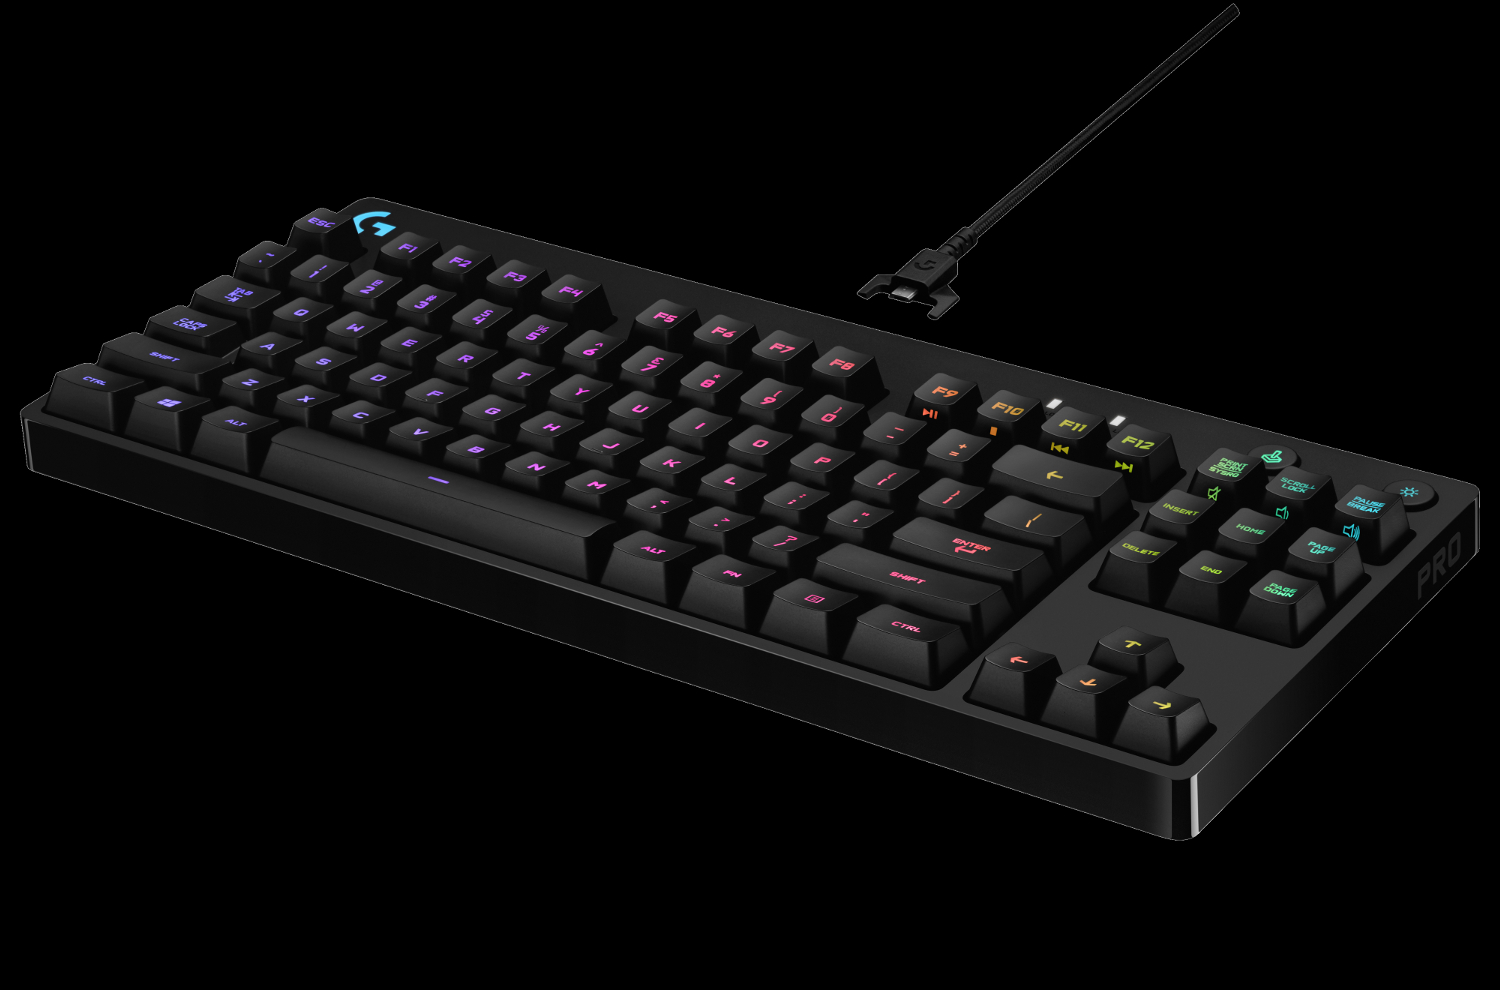 New Logitech G Pro Mechanical Gaming Keyboard Arrives for Esports Enthusiasts